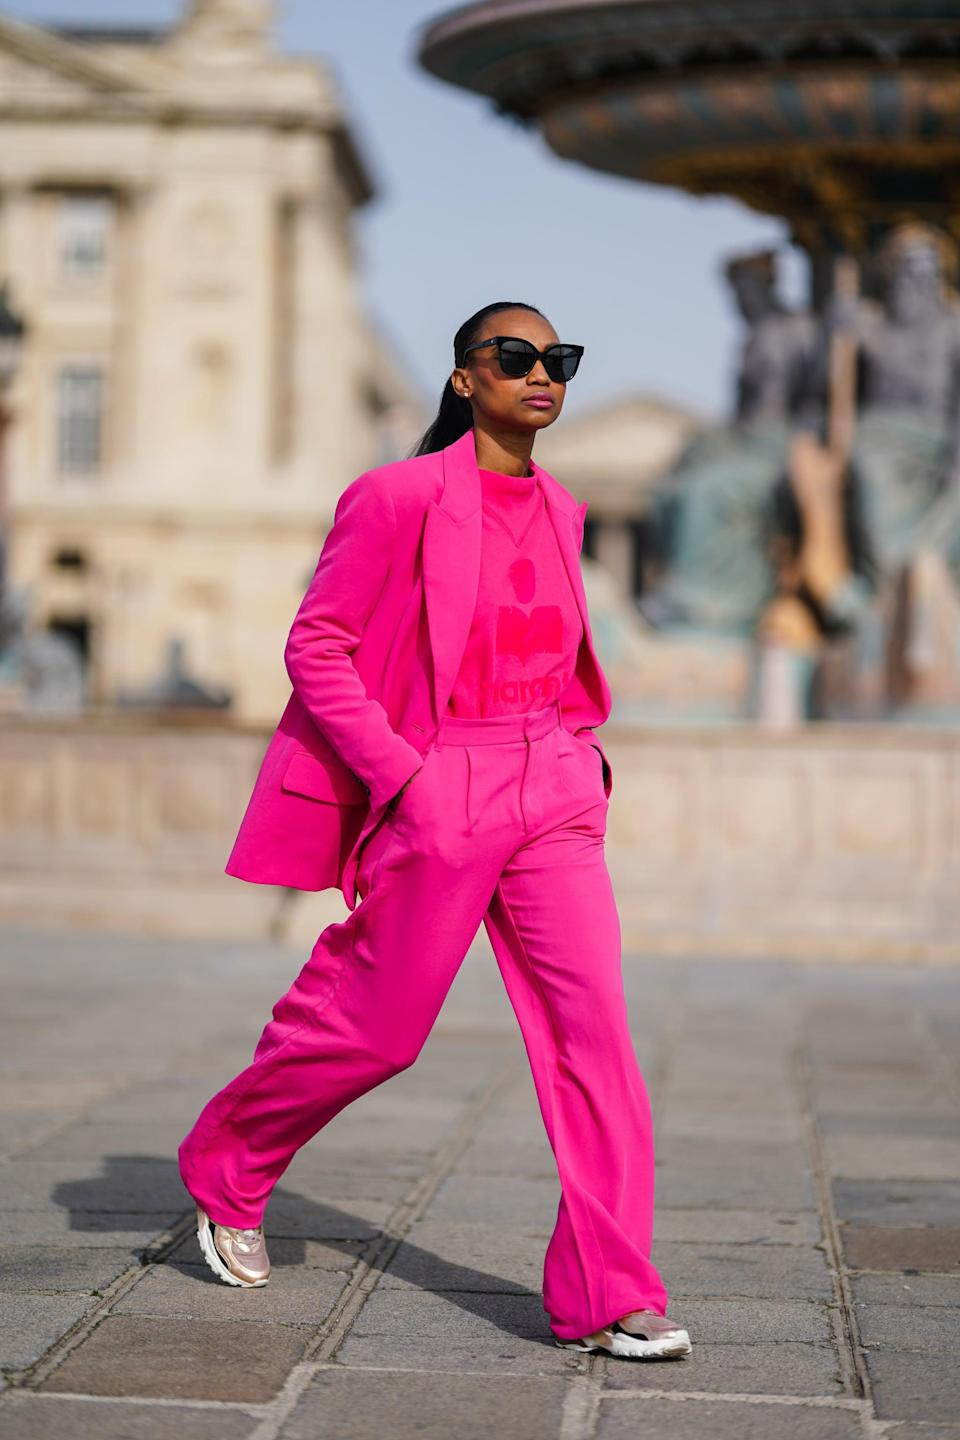 <p>A matching set makes such a statement, especially in a bright color. Pro tip: pair your suit with sneakers instead of heels for a more casual look.</p>